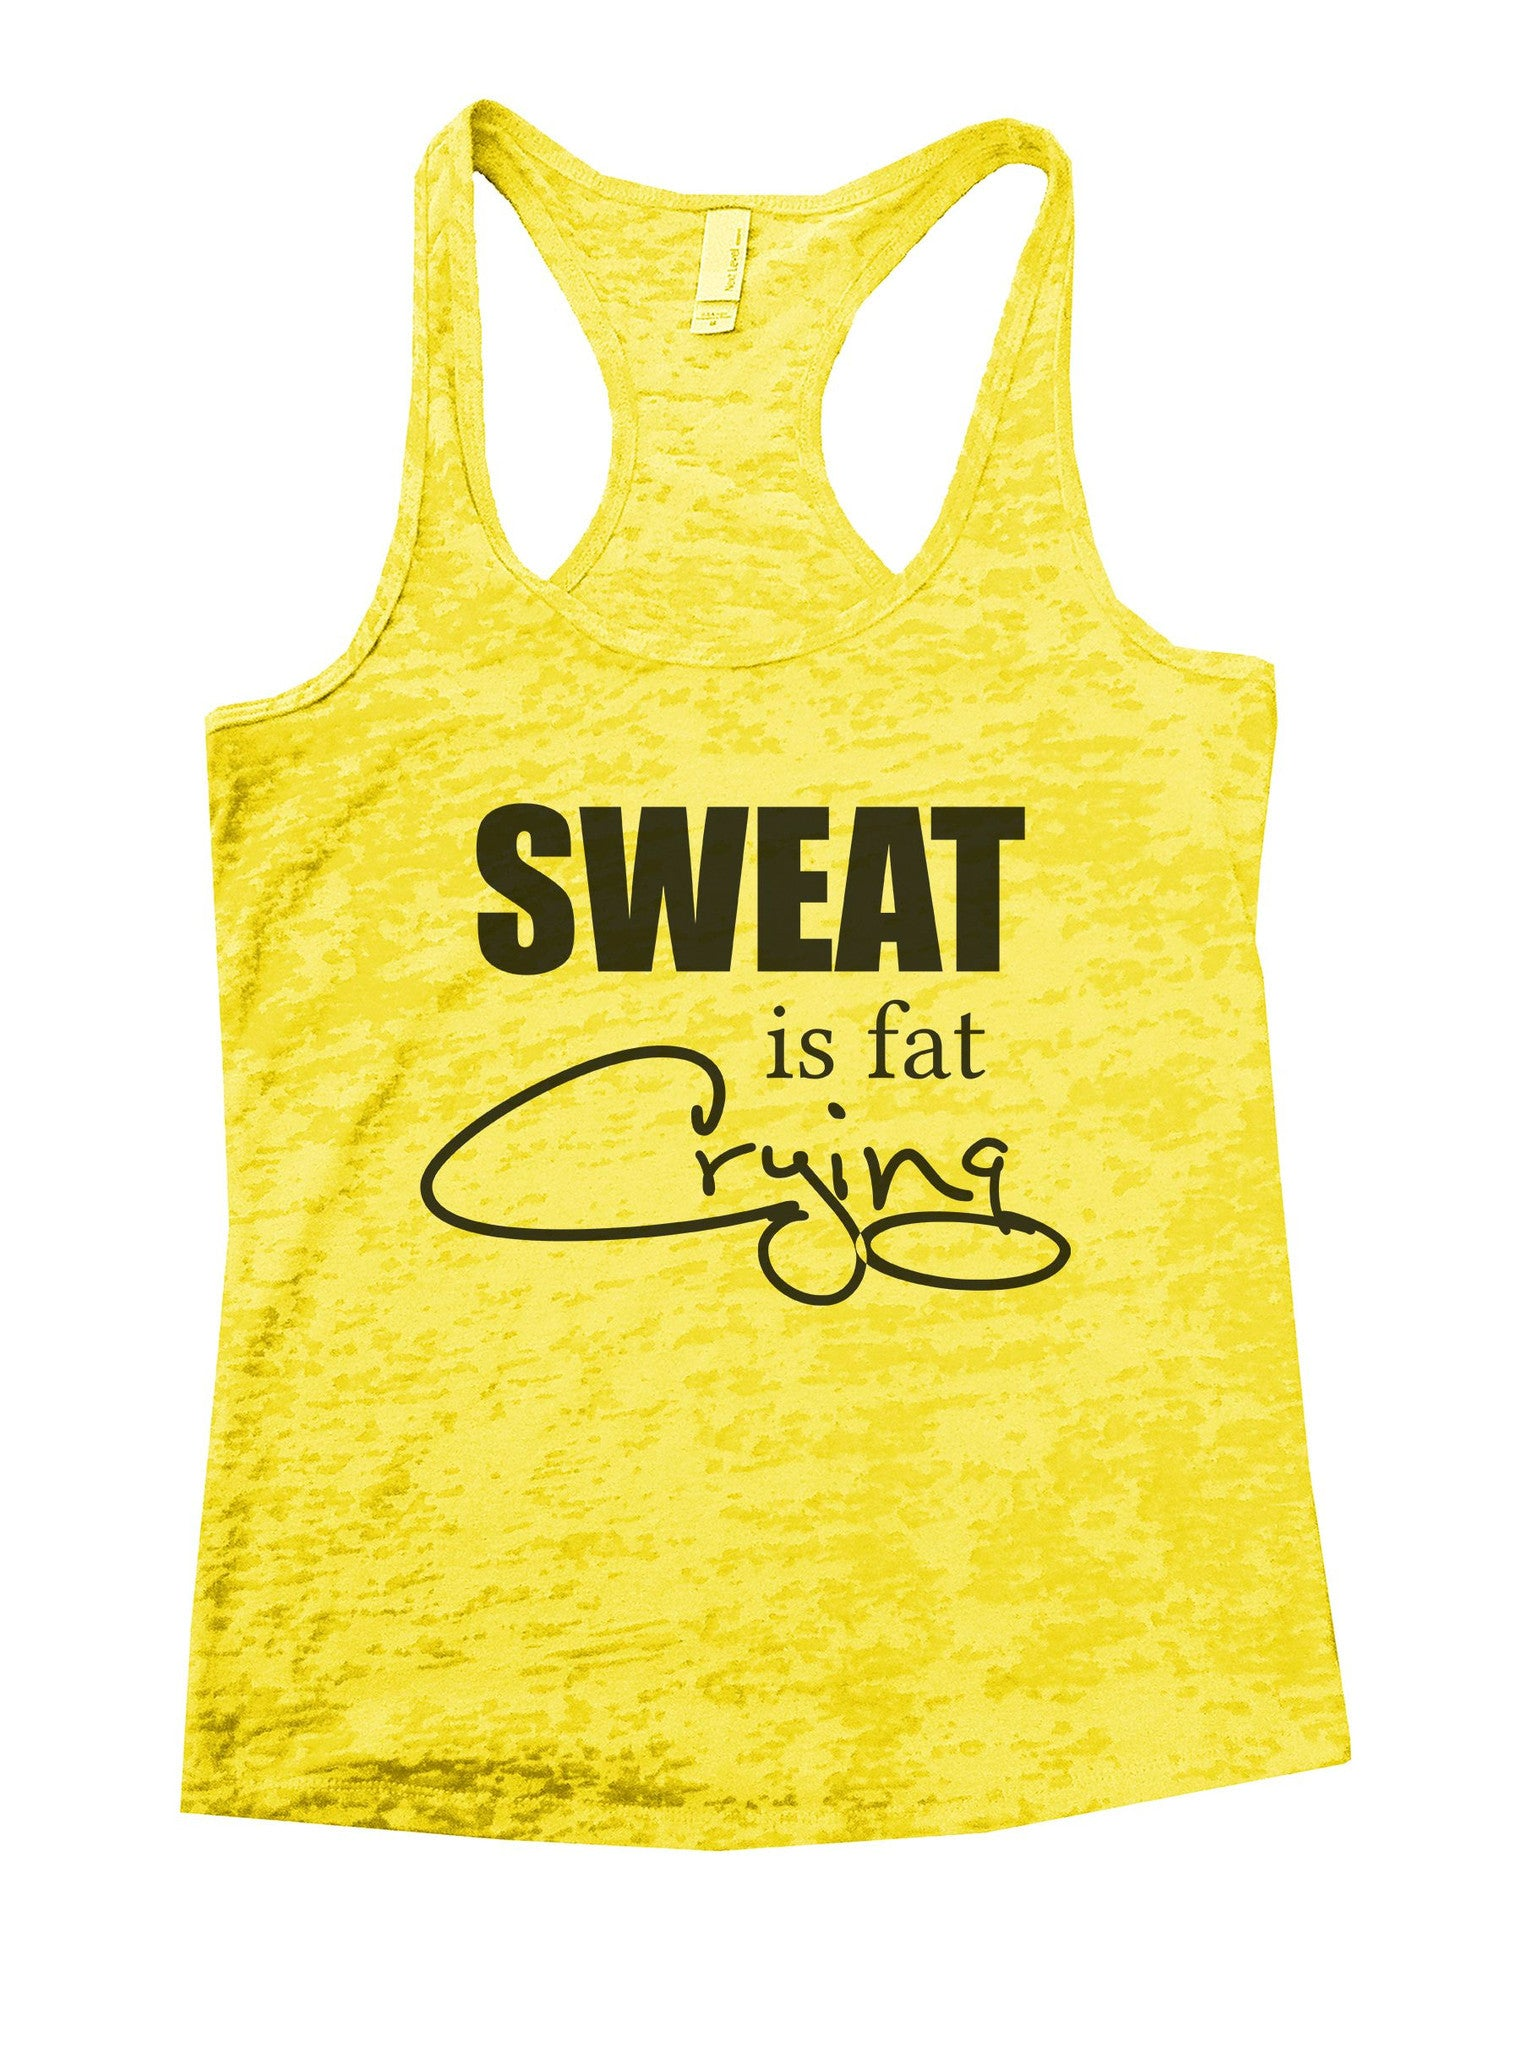 Sweat Is Fat Crying Burnout Tank Top By BurnoutTankTops.com - 1088 - Funny Shirts Tank Tops Burnouts and Triblends  - 7